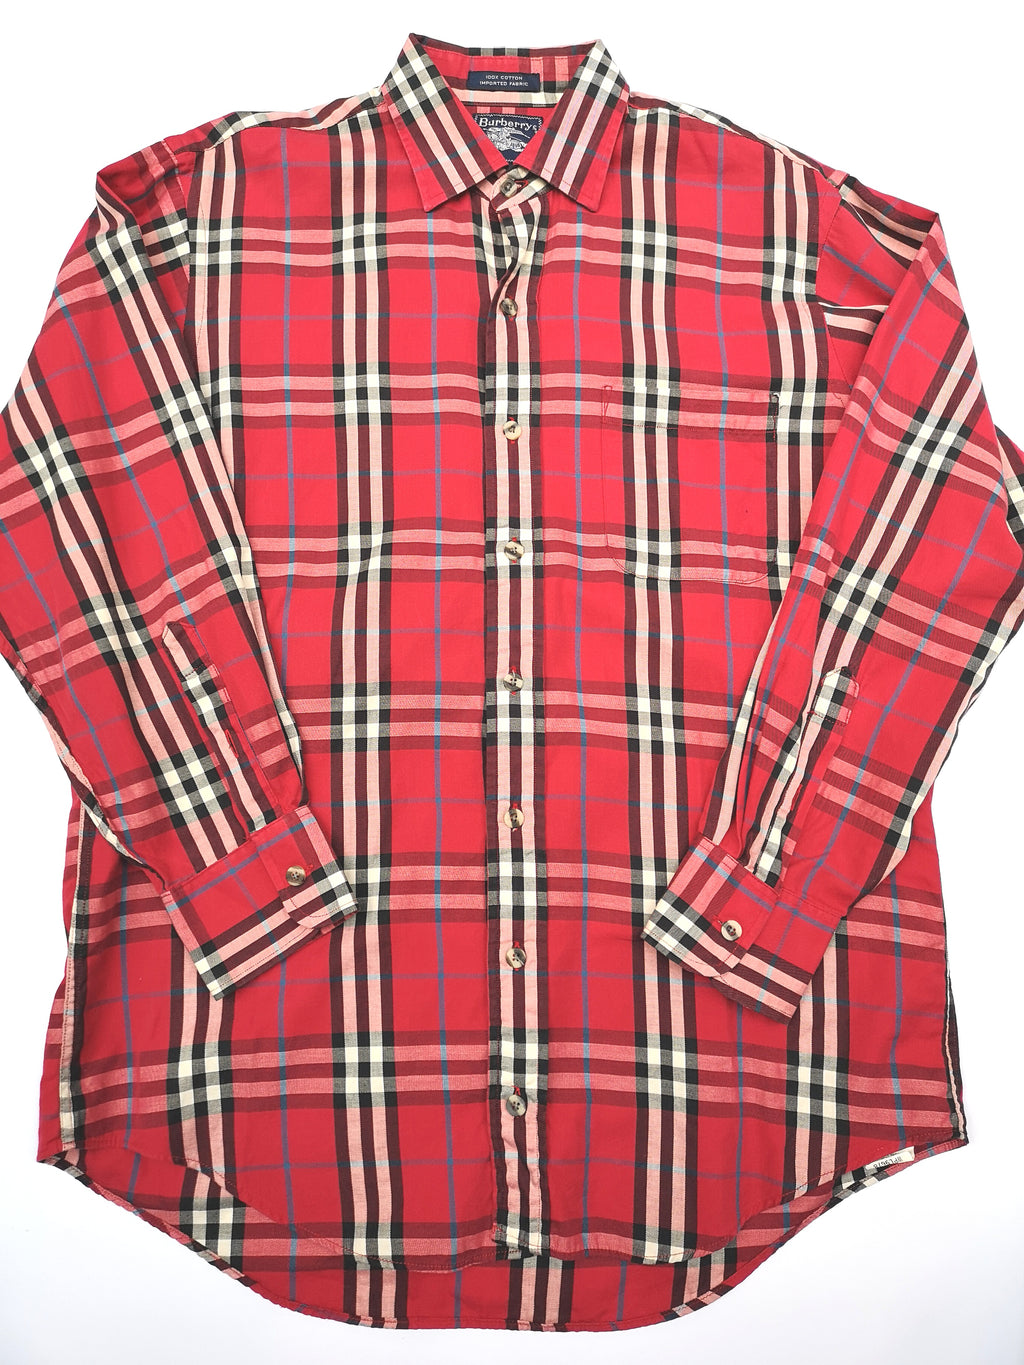 BURBERRYS RED PLAID SHIRT